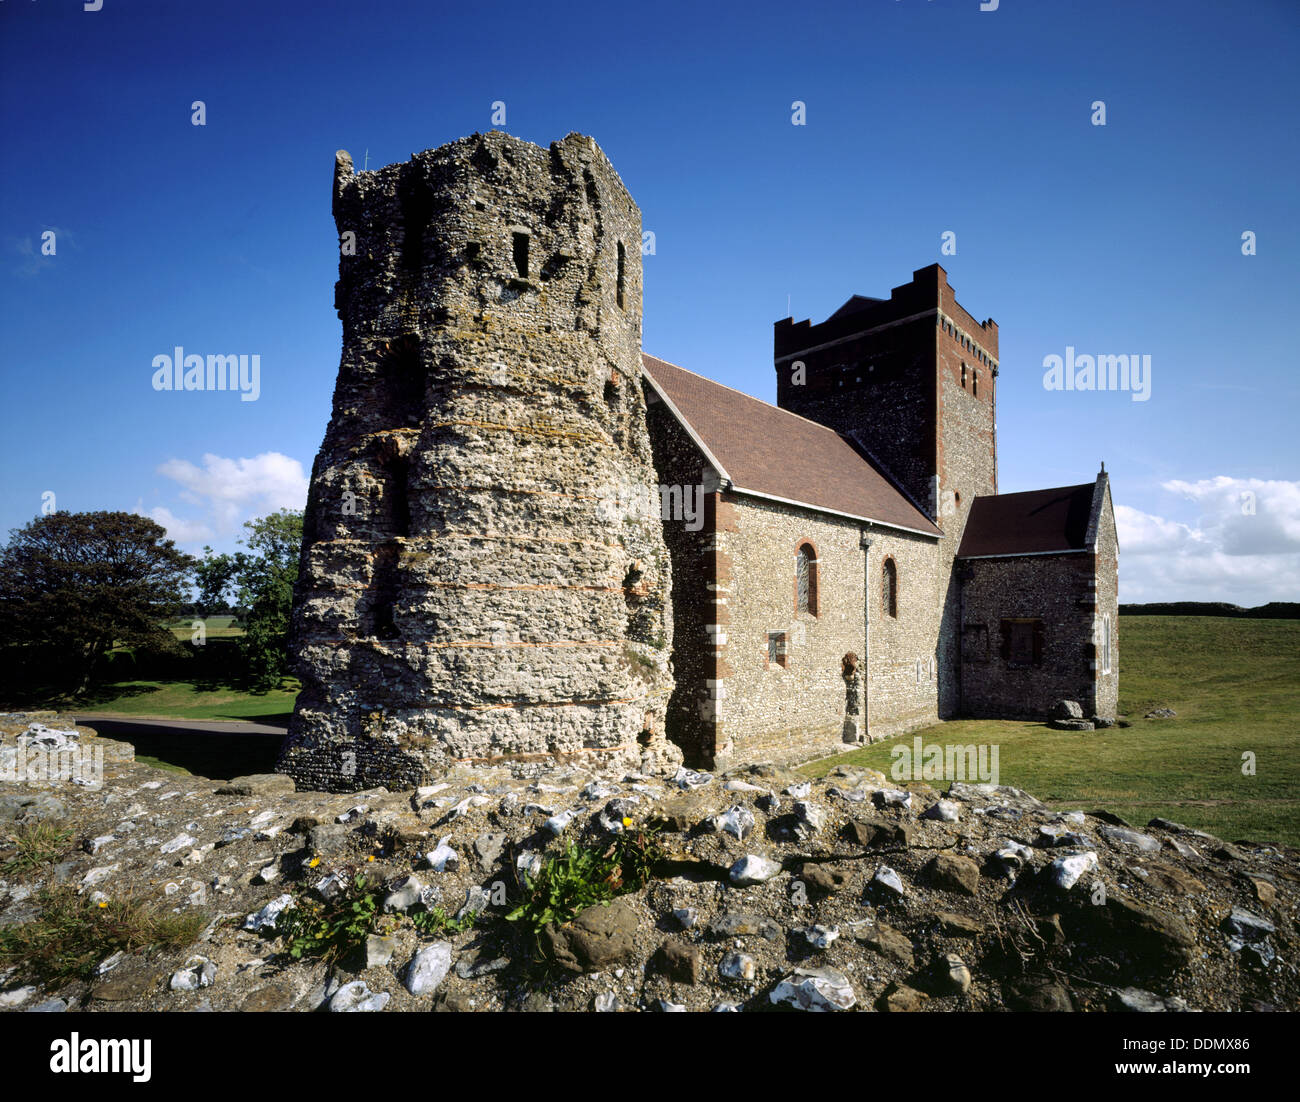 Abandoned Places Medway: Ruins In Kent Stock Photos & Ruins In Kent Stock Images